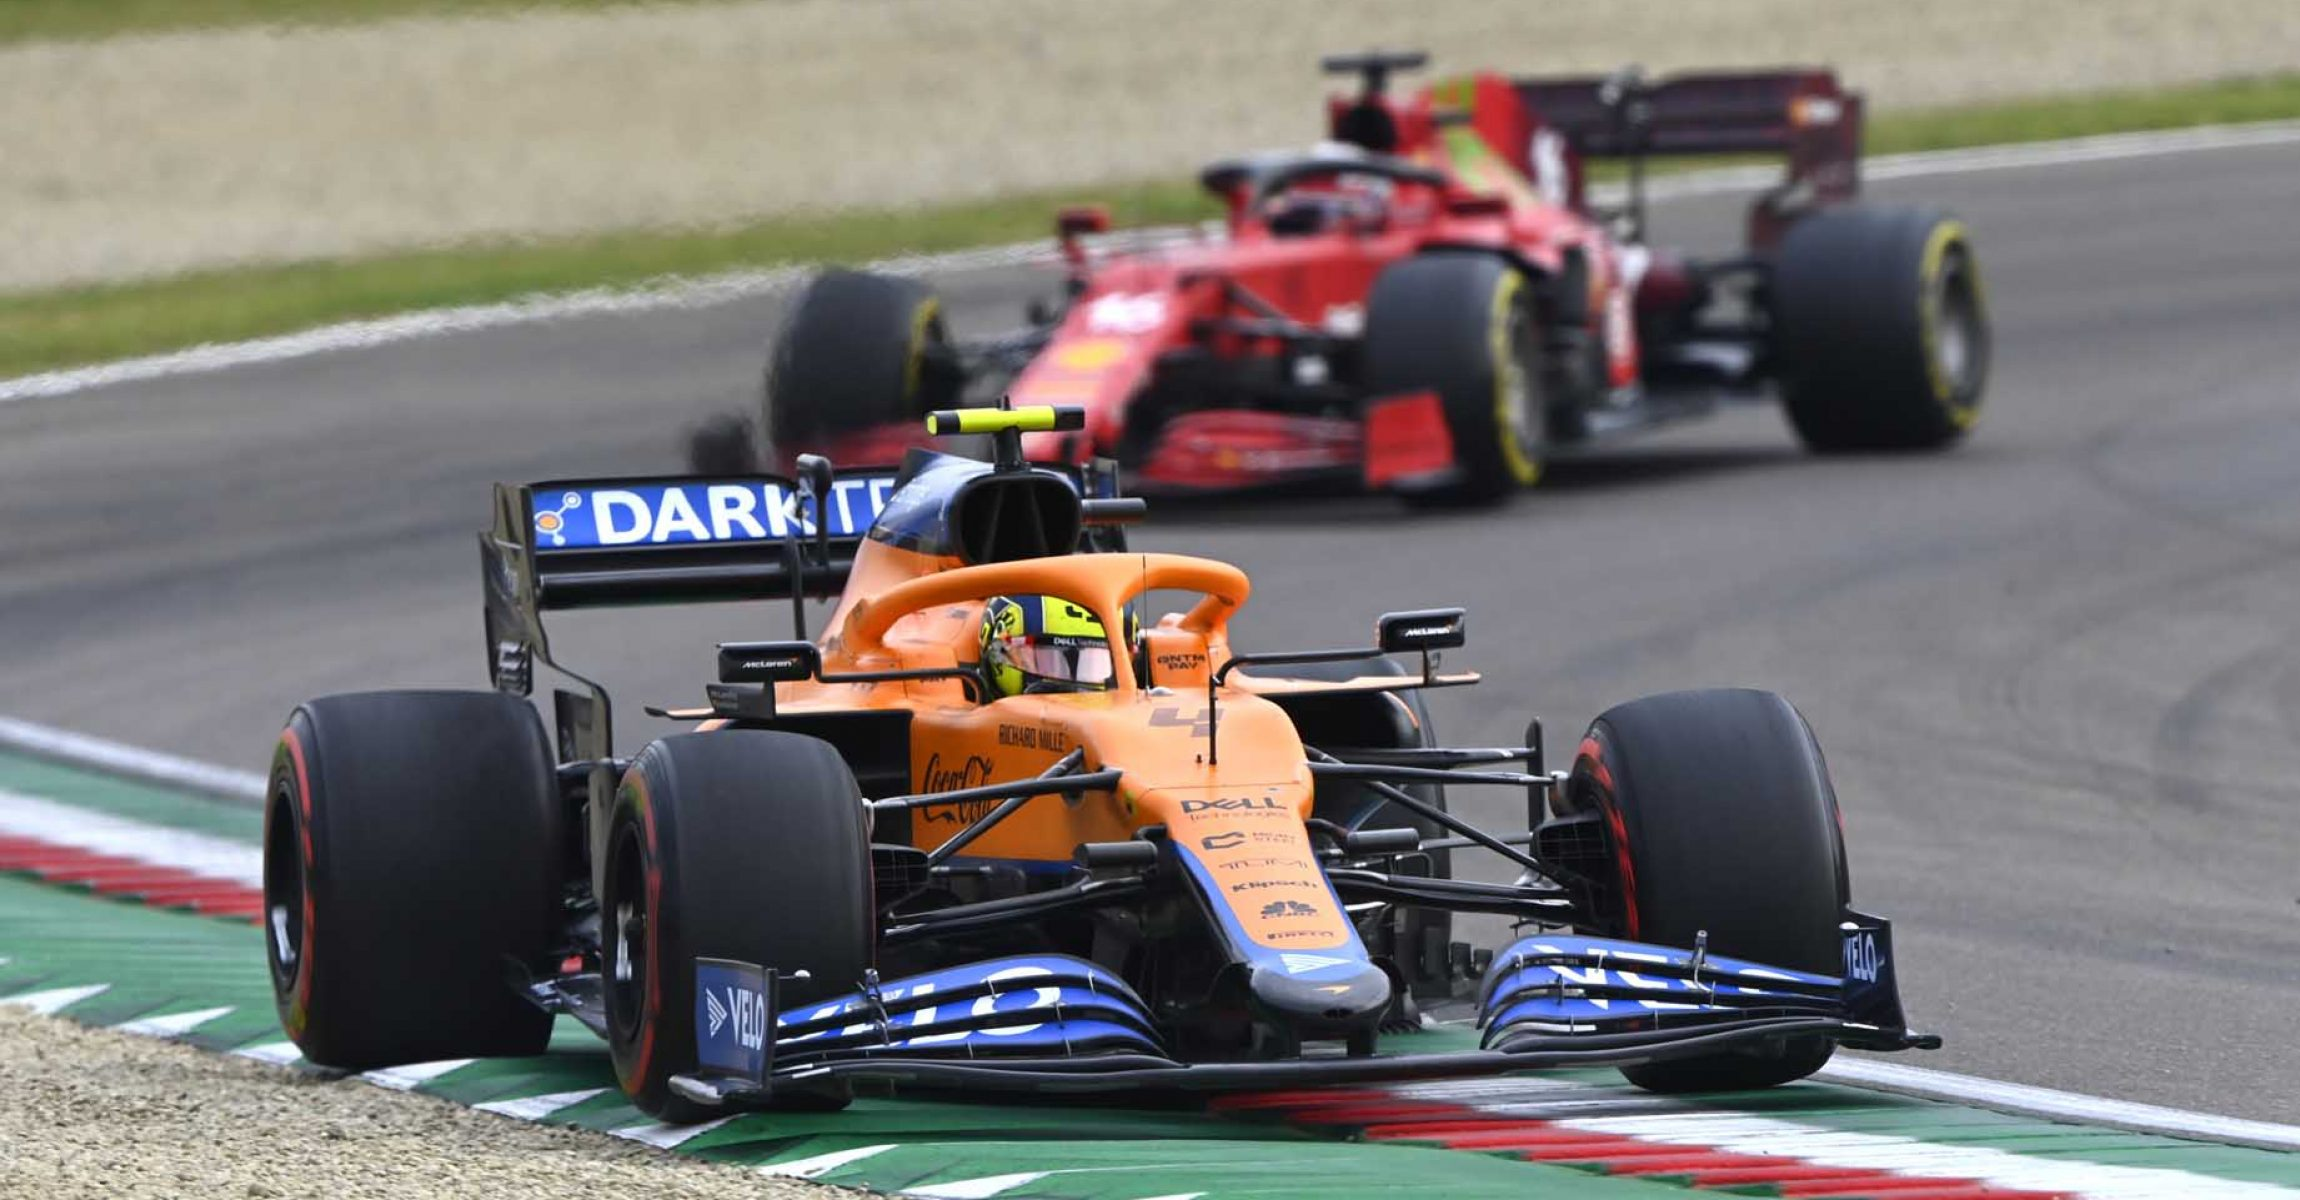 Lando Norris, McLaren MCL35M, leads Charles Leclerc, Ferrari SF21 car straight on in turn